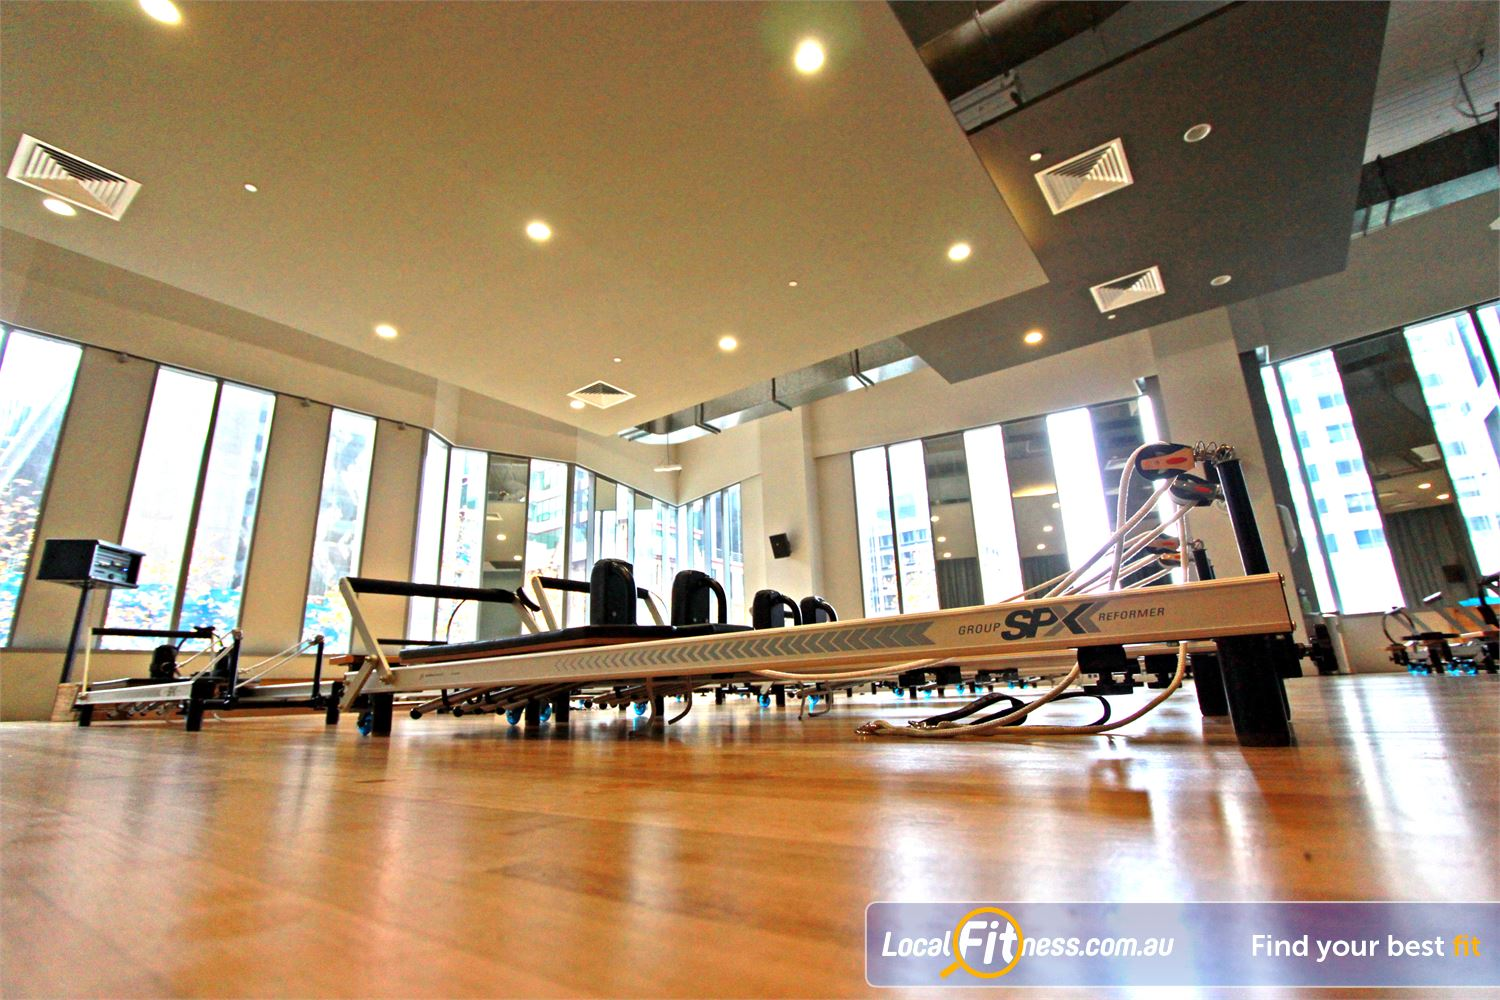 South Pacific Health Clubs Near East Melbourne Stott Pilates SPX Reformer beds.